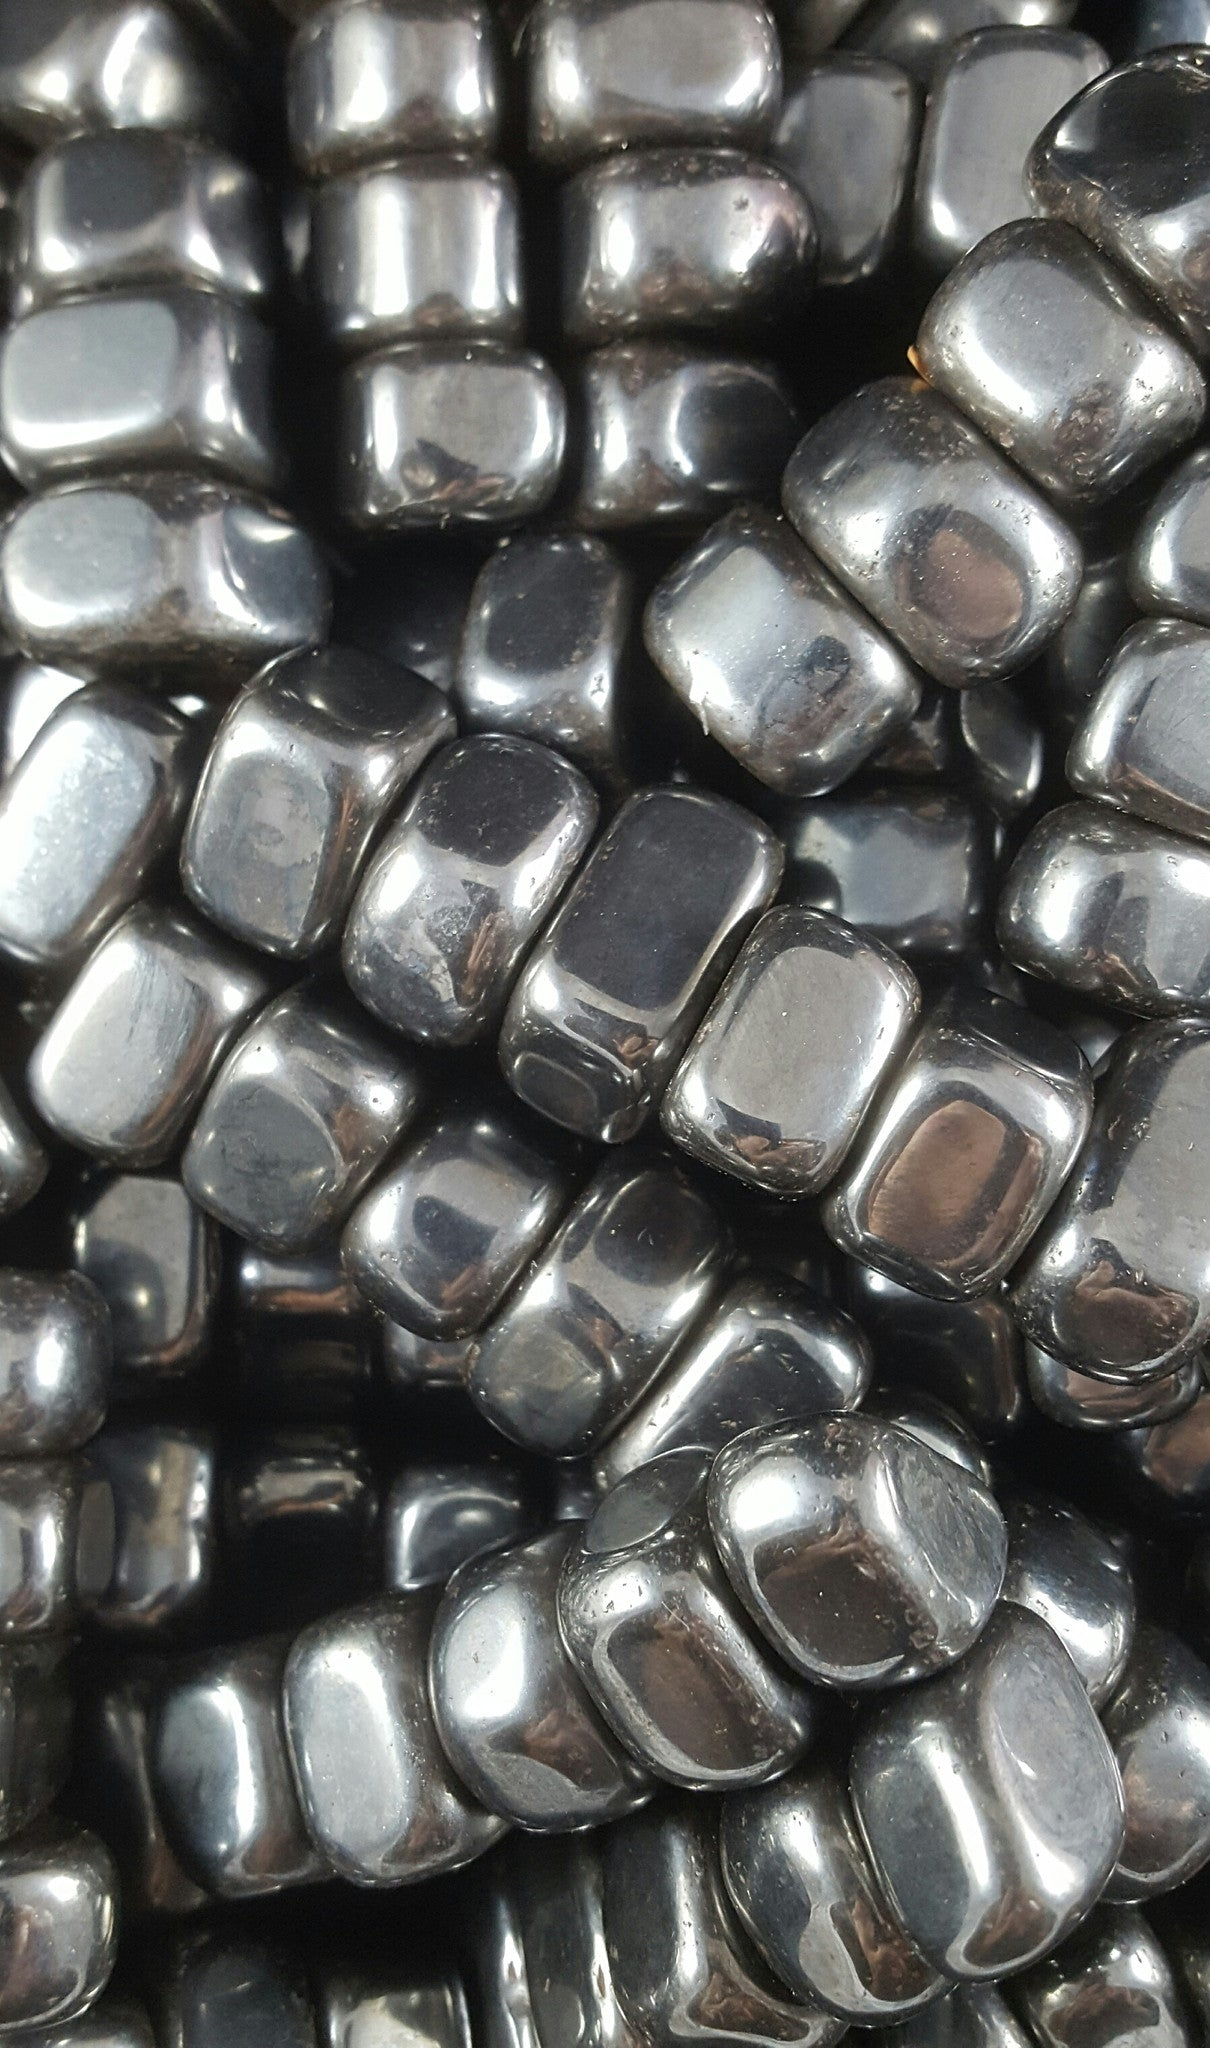 Magnetic 'Sticky' Stones